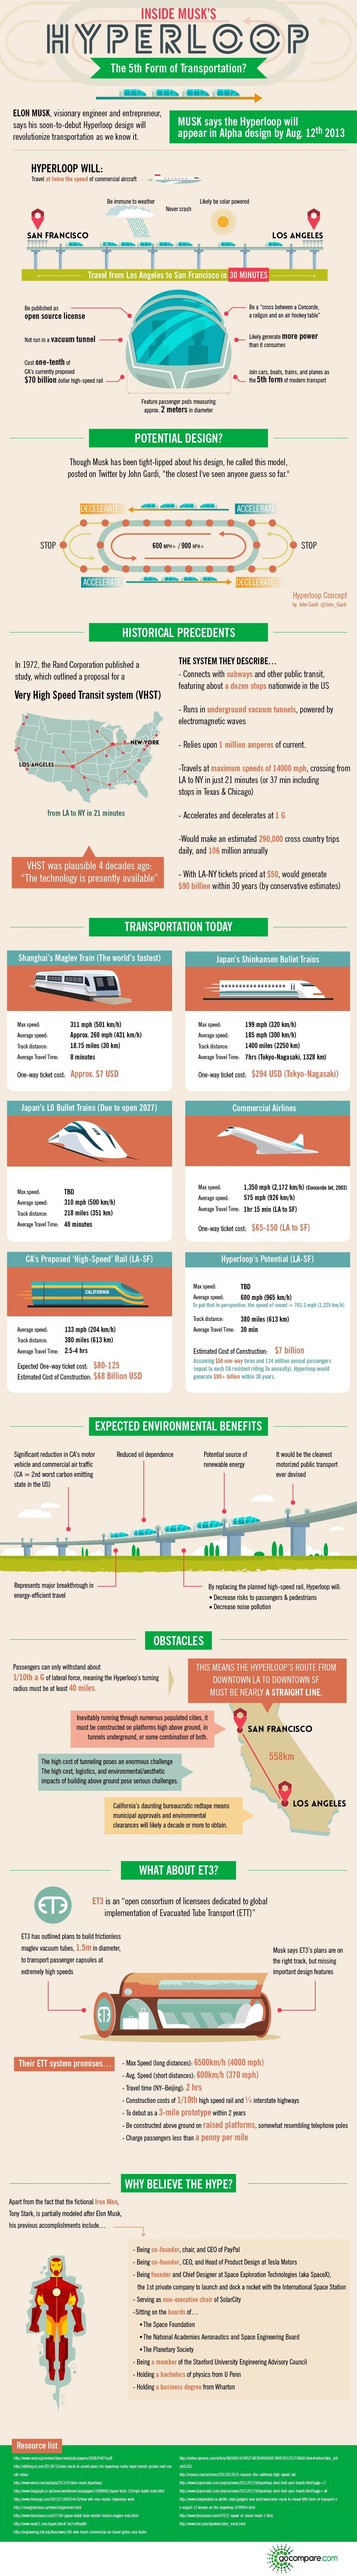 Train Transportation Growth and Technologies